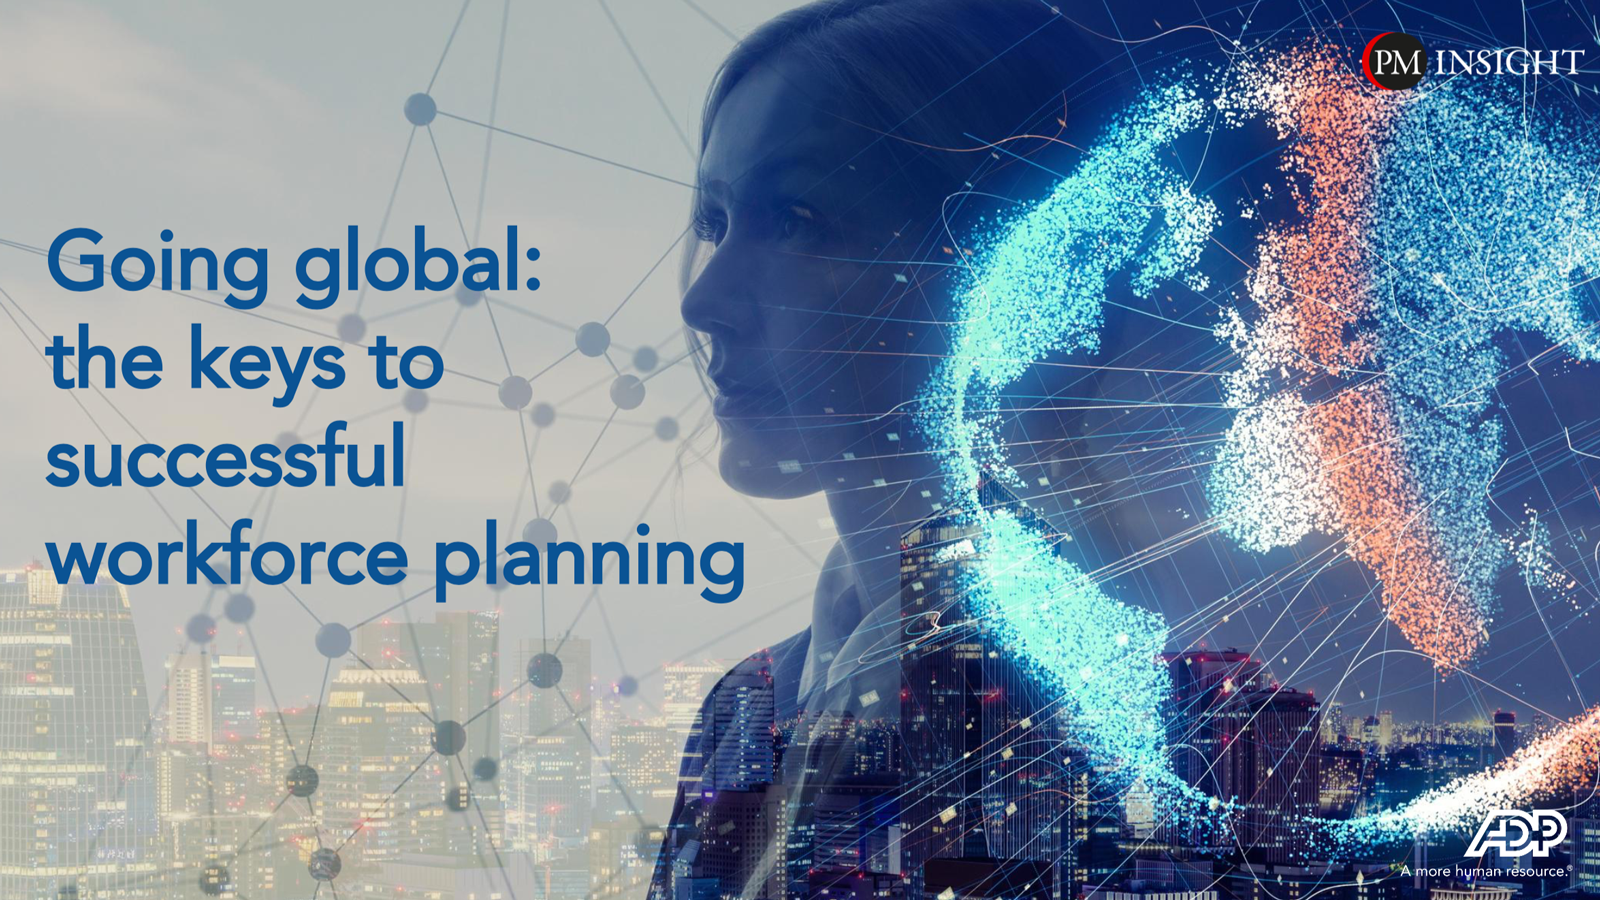 Going global: the keys to successful workforce planning